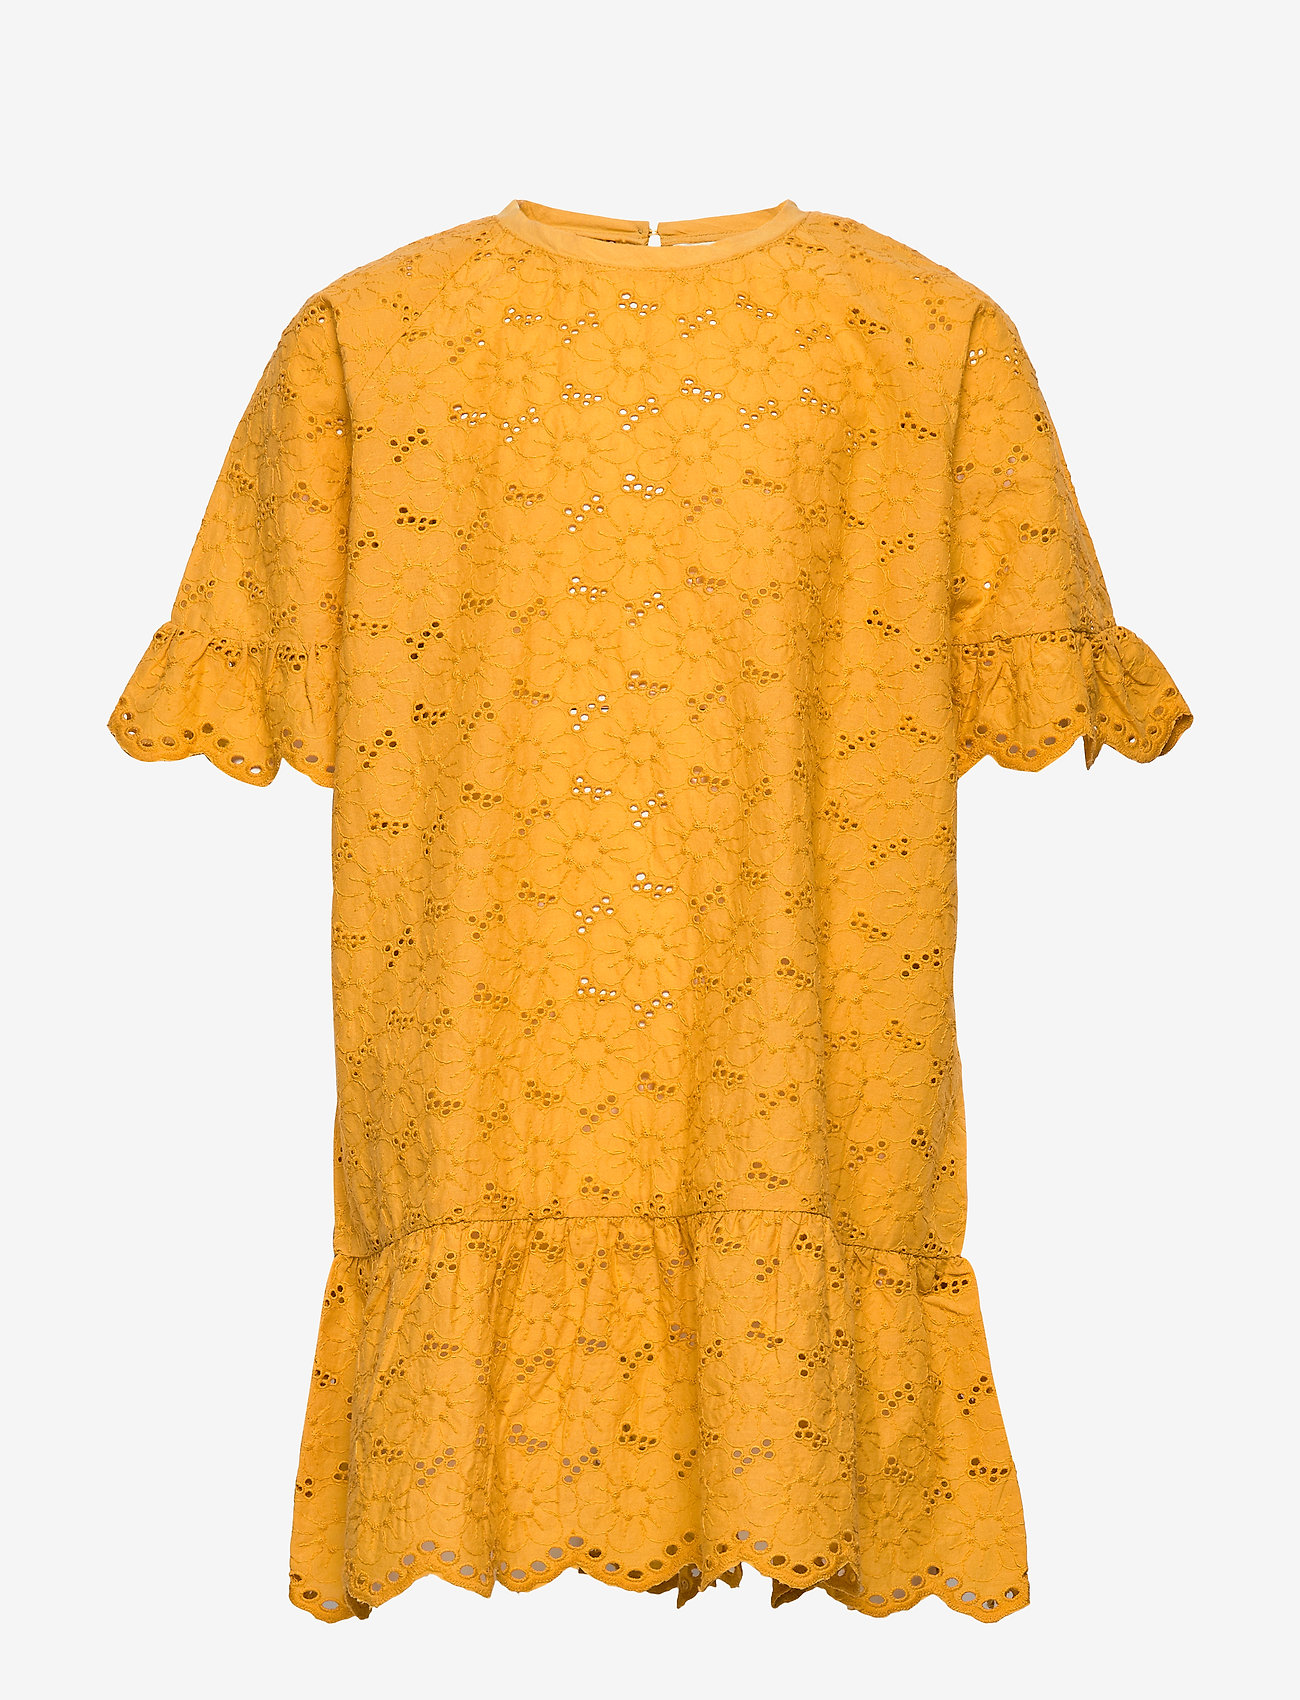 Faylinn Dress (Sunflower) (23.98 €) - Soft Gallery 5rK3X